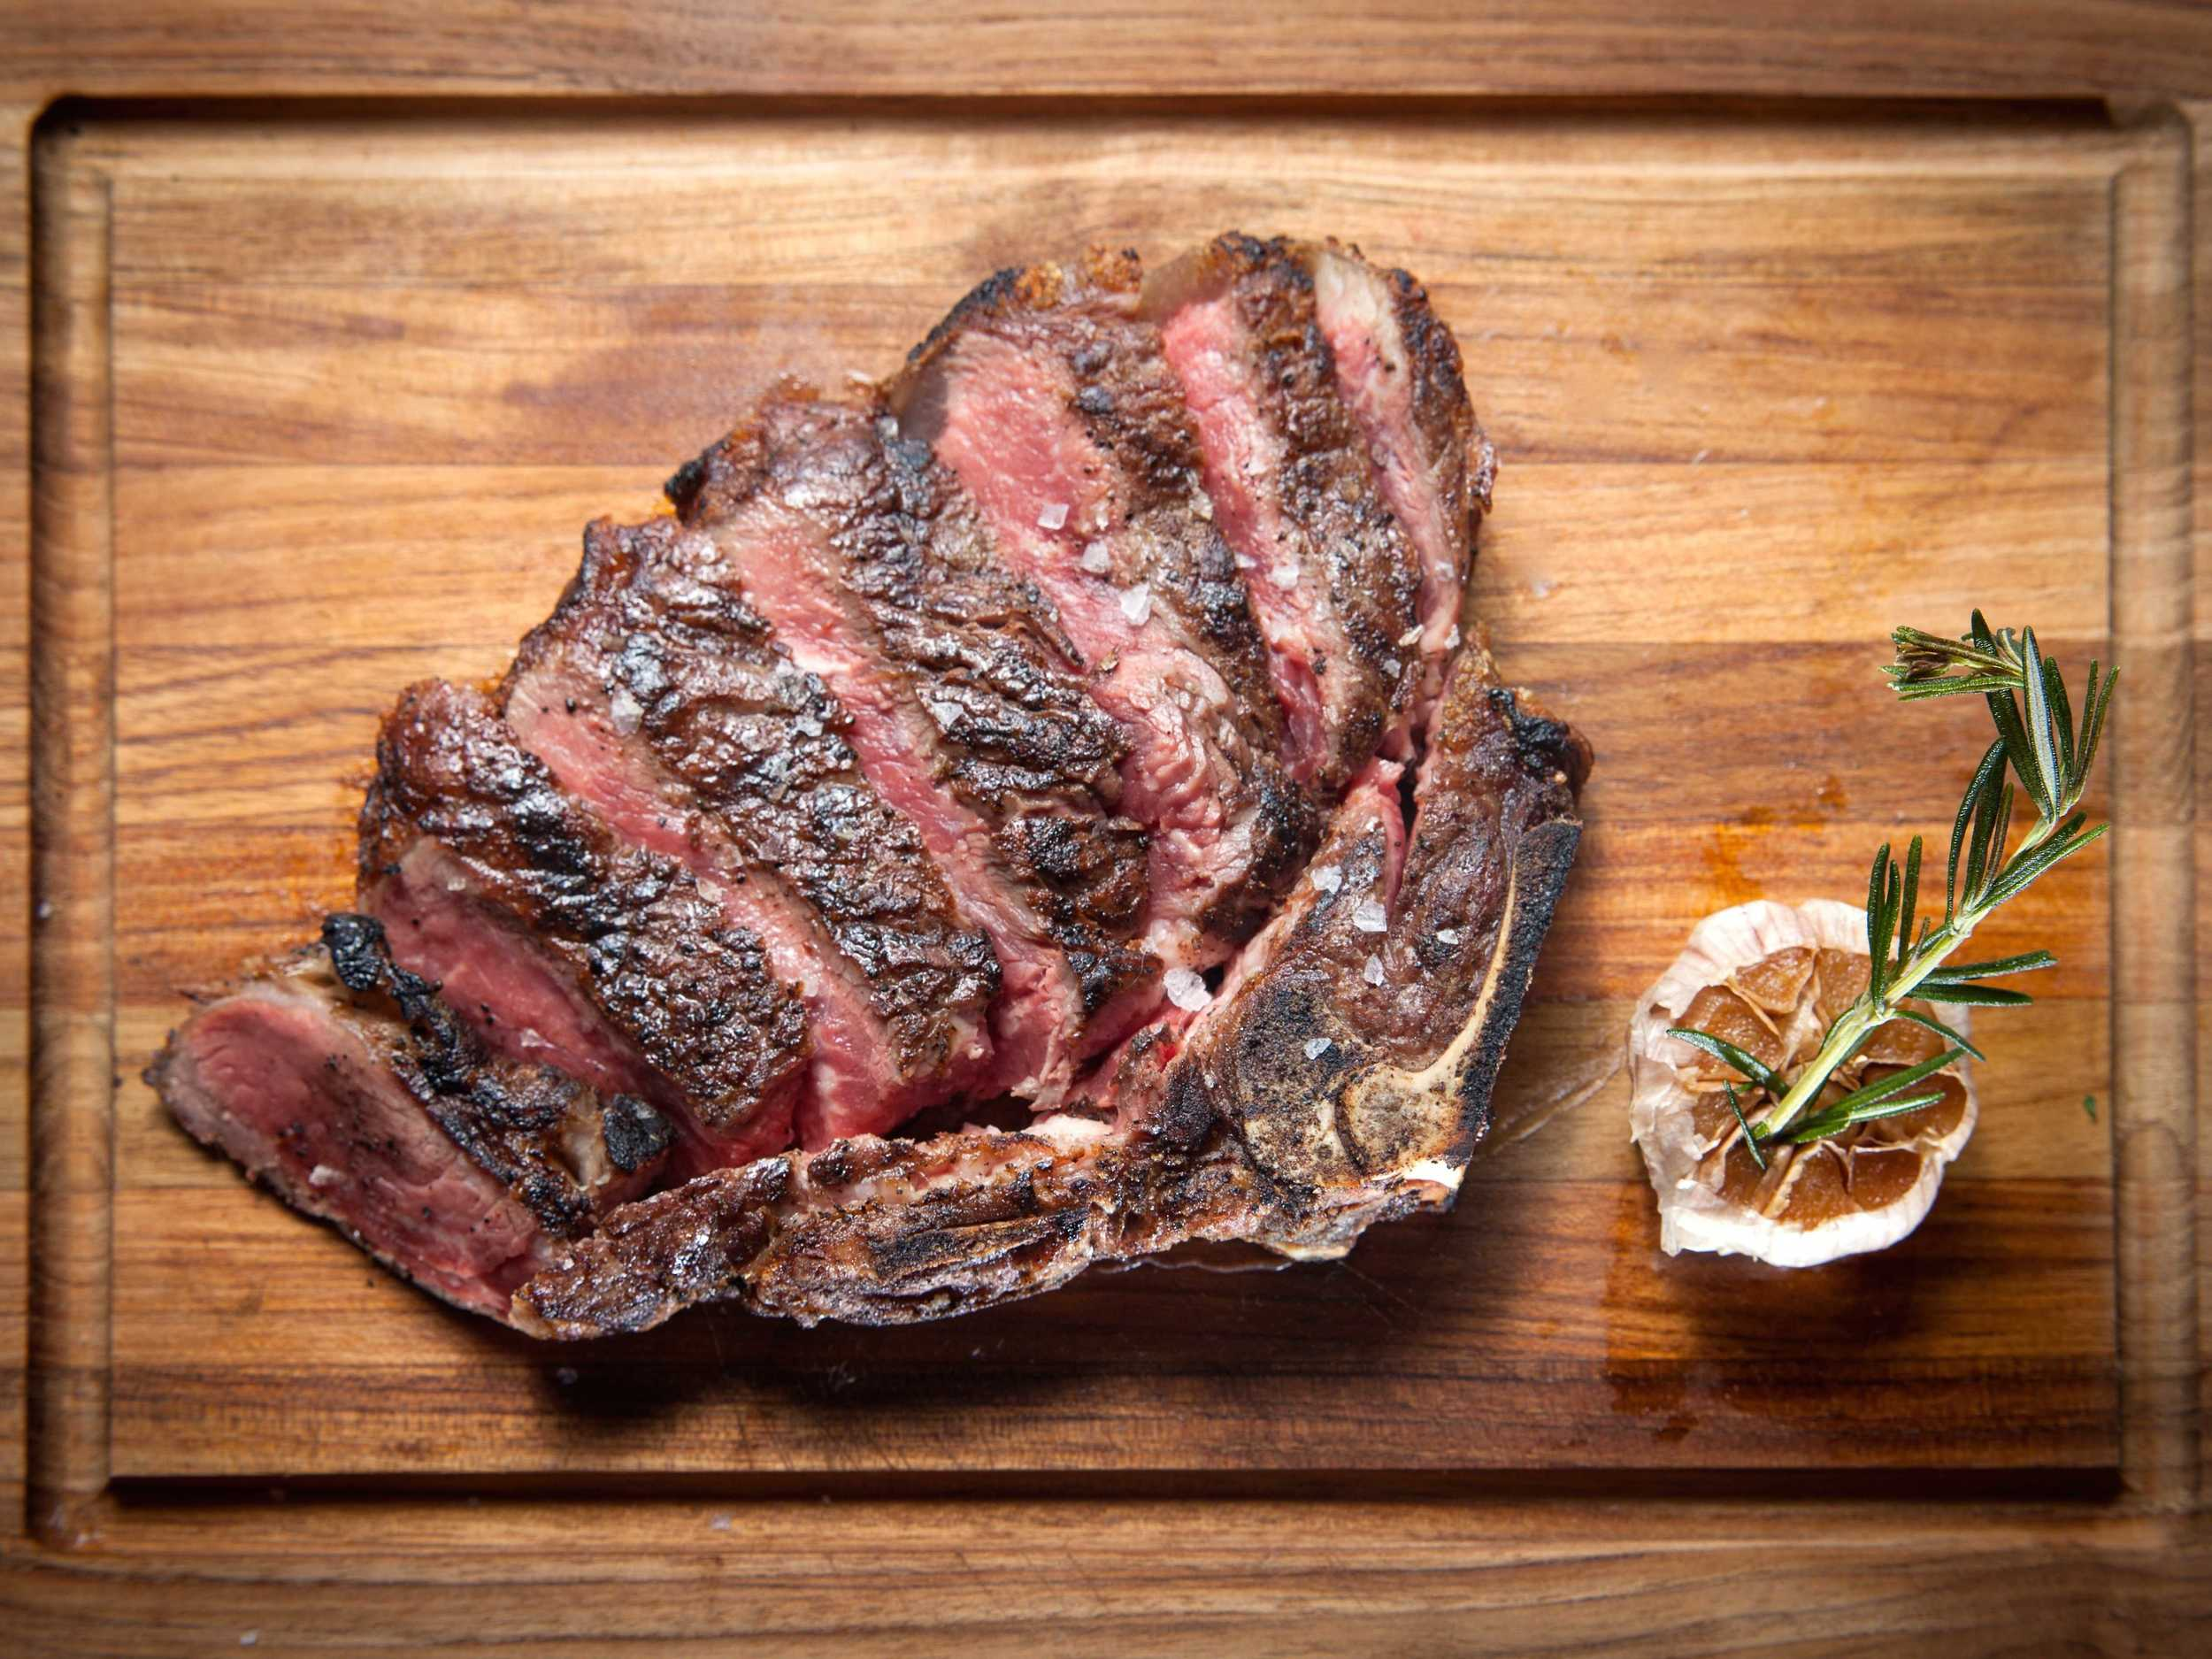 the-results-are-in-here-are-the-top-11-new-power-steaks-in-new-york-city.jpg